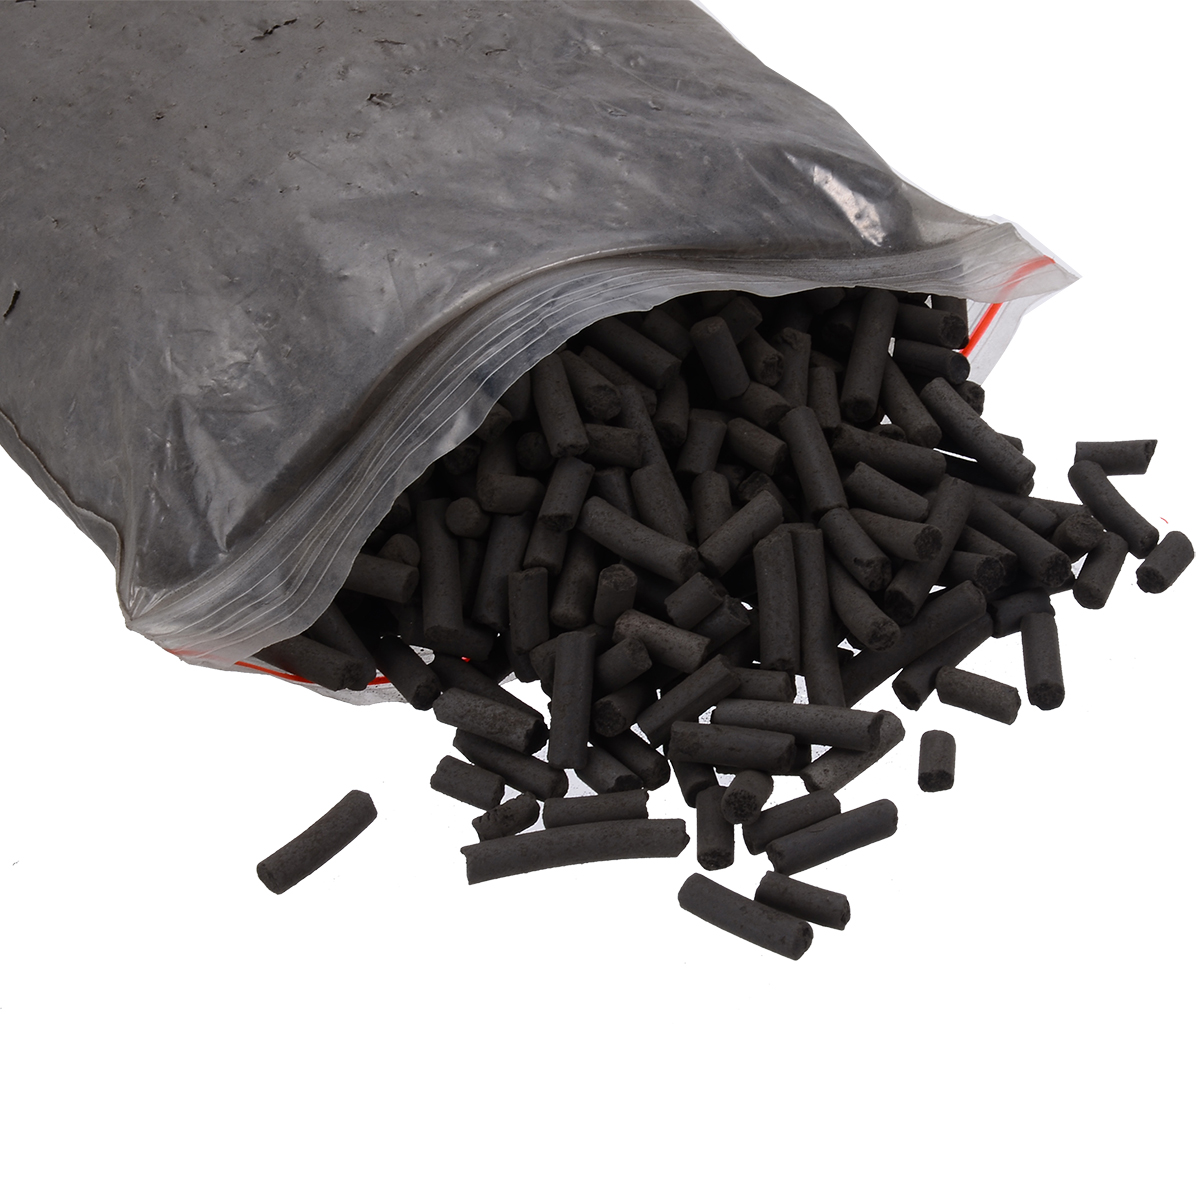 The Activated Carbon Filter Material Activated Charcoal Carbon 500g For Aquarium Fish Tank Water Purification Filter